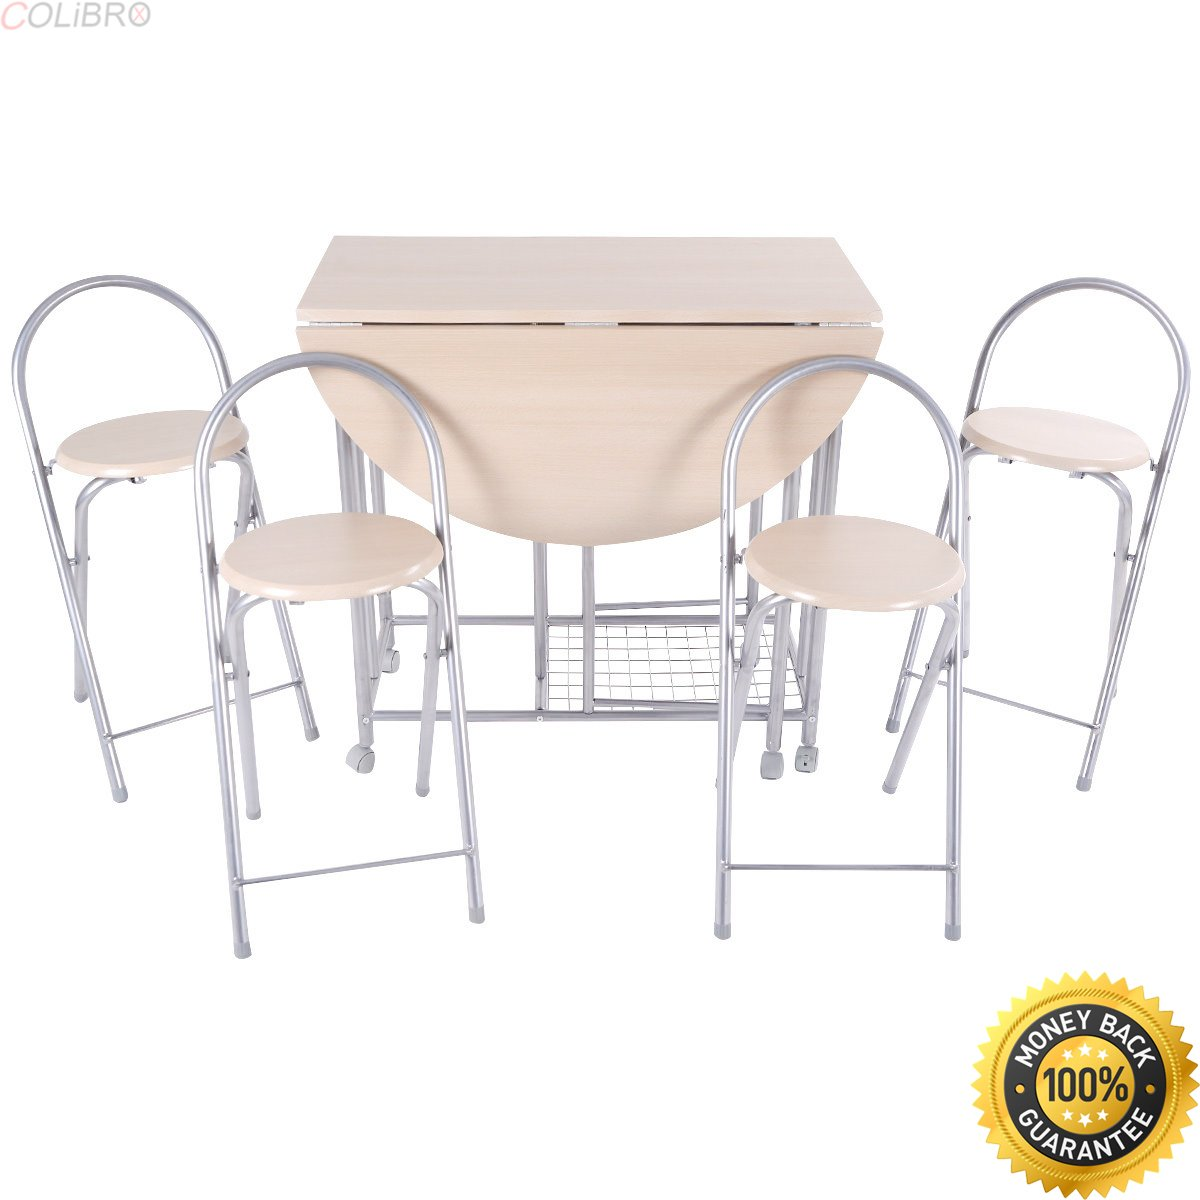 Colibrox 5pc foldable dining set table and 4 chairs breakfast kitchen furniture newround dining table for 4kitchen dinette sets for salecheap kitchen